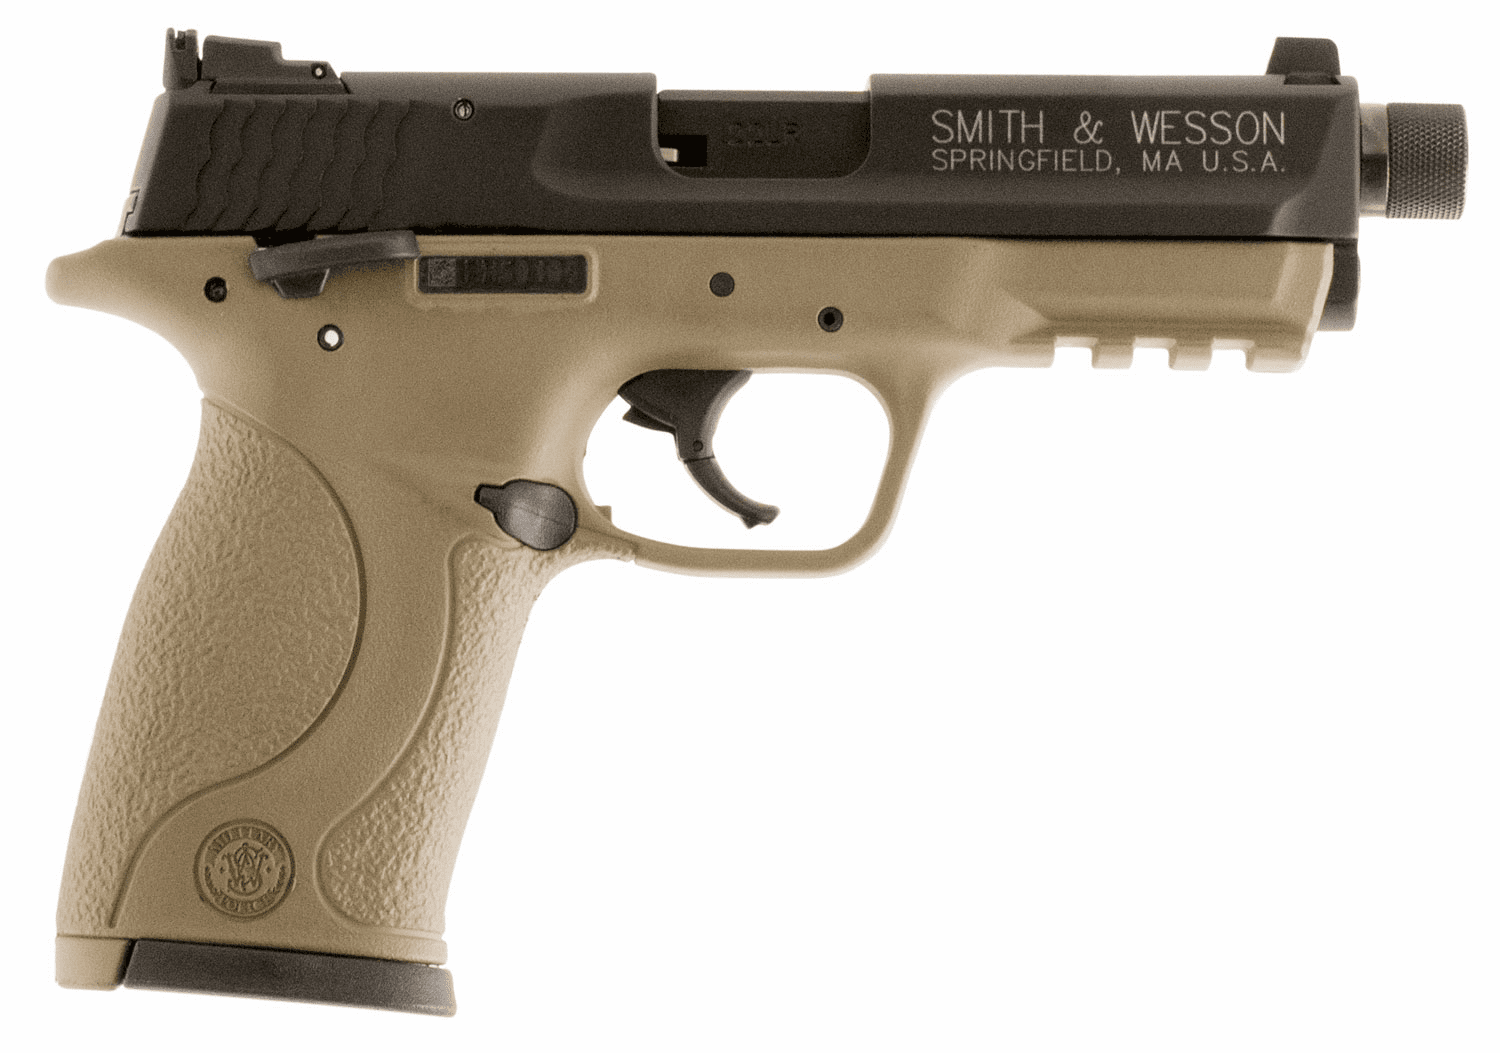 Smith & Wesson M&P 22 Compact w/Threaded Barrel